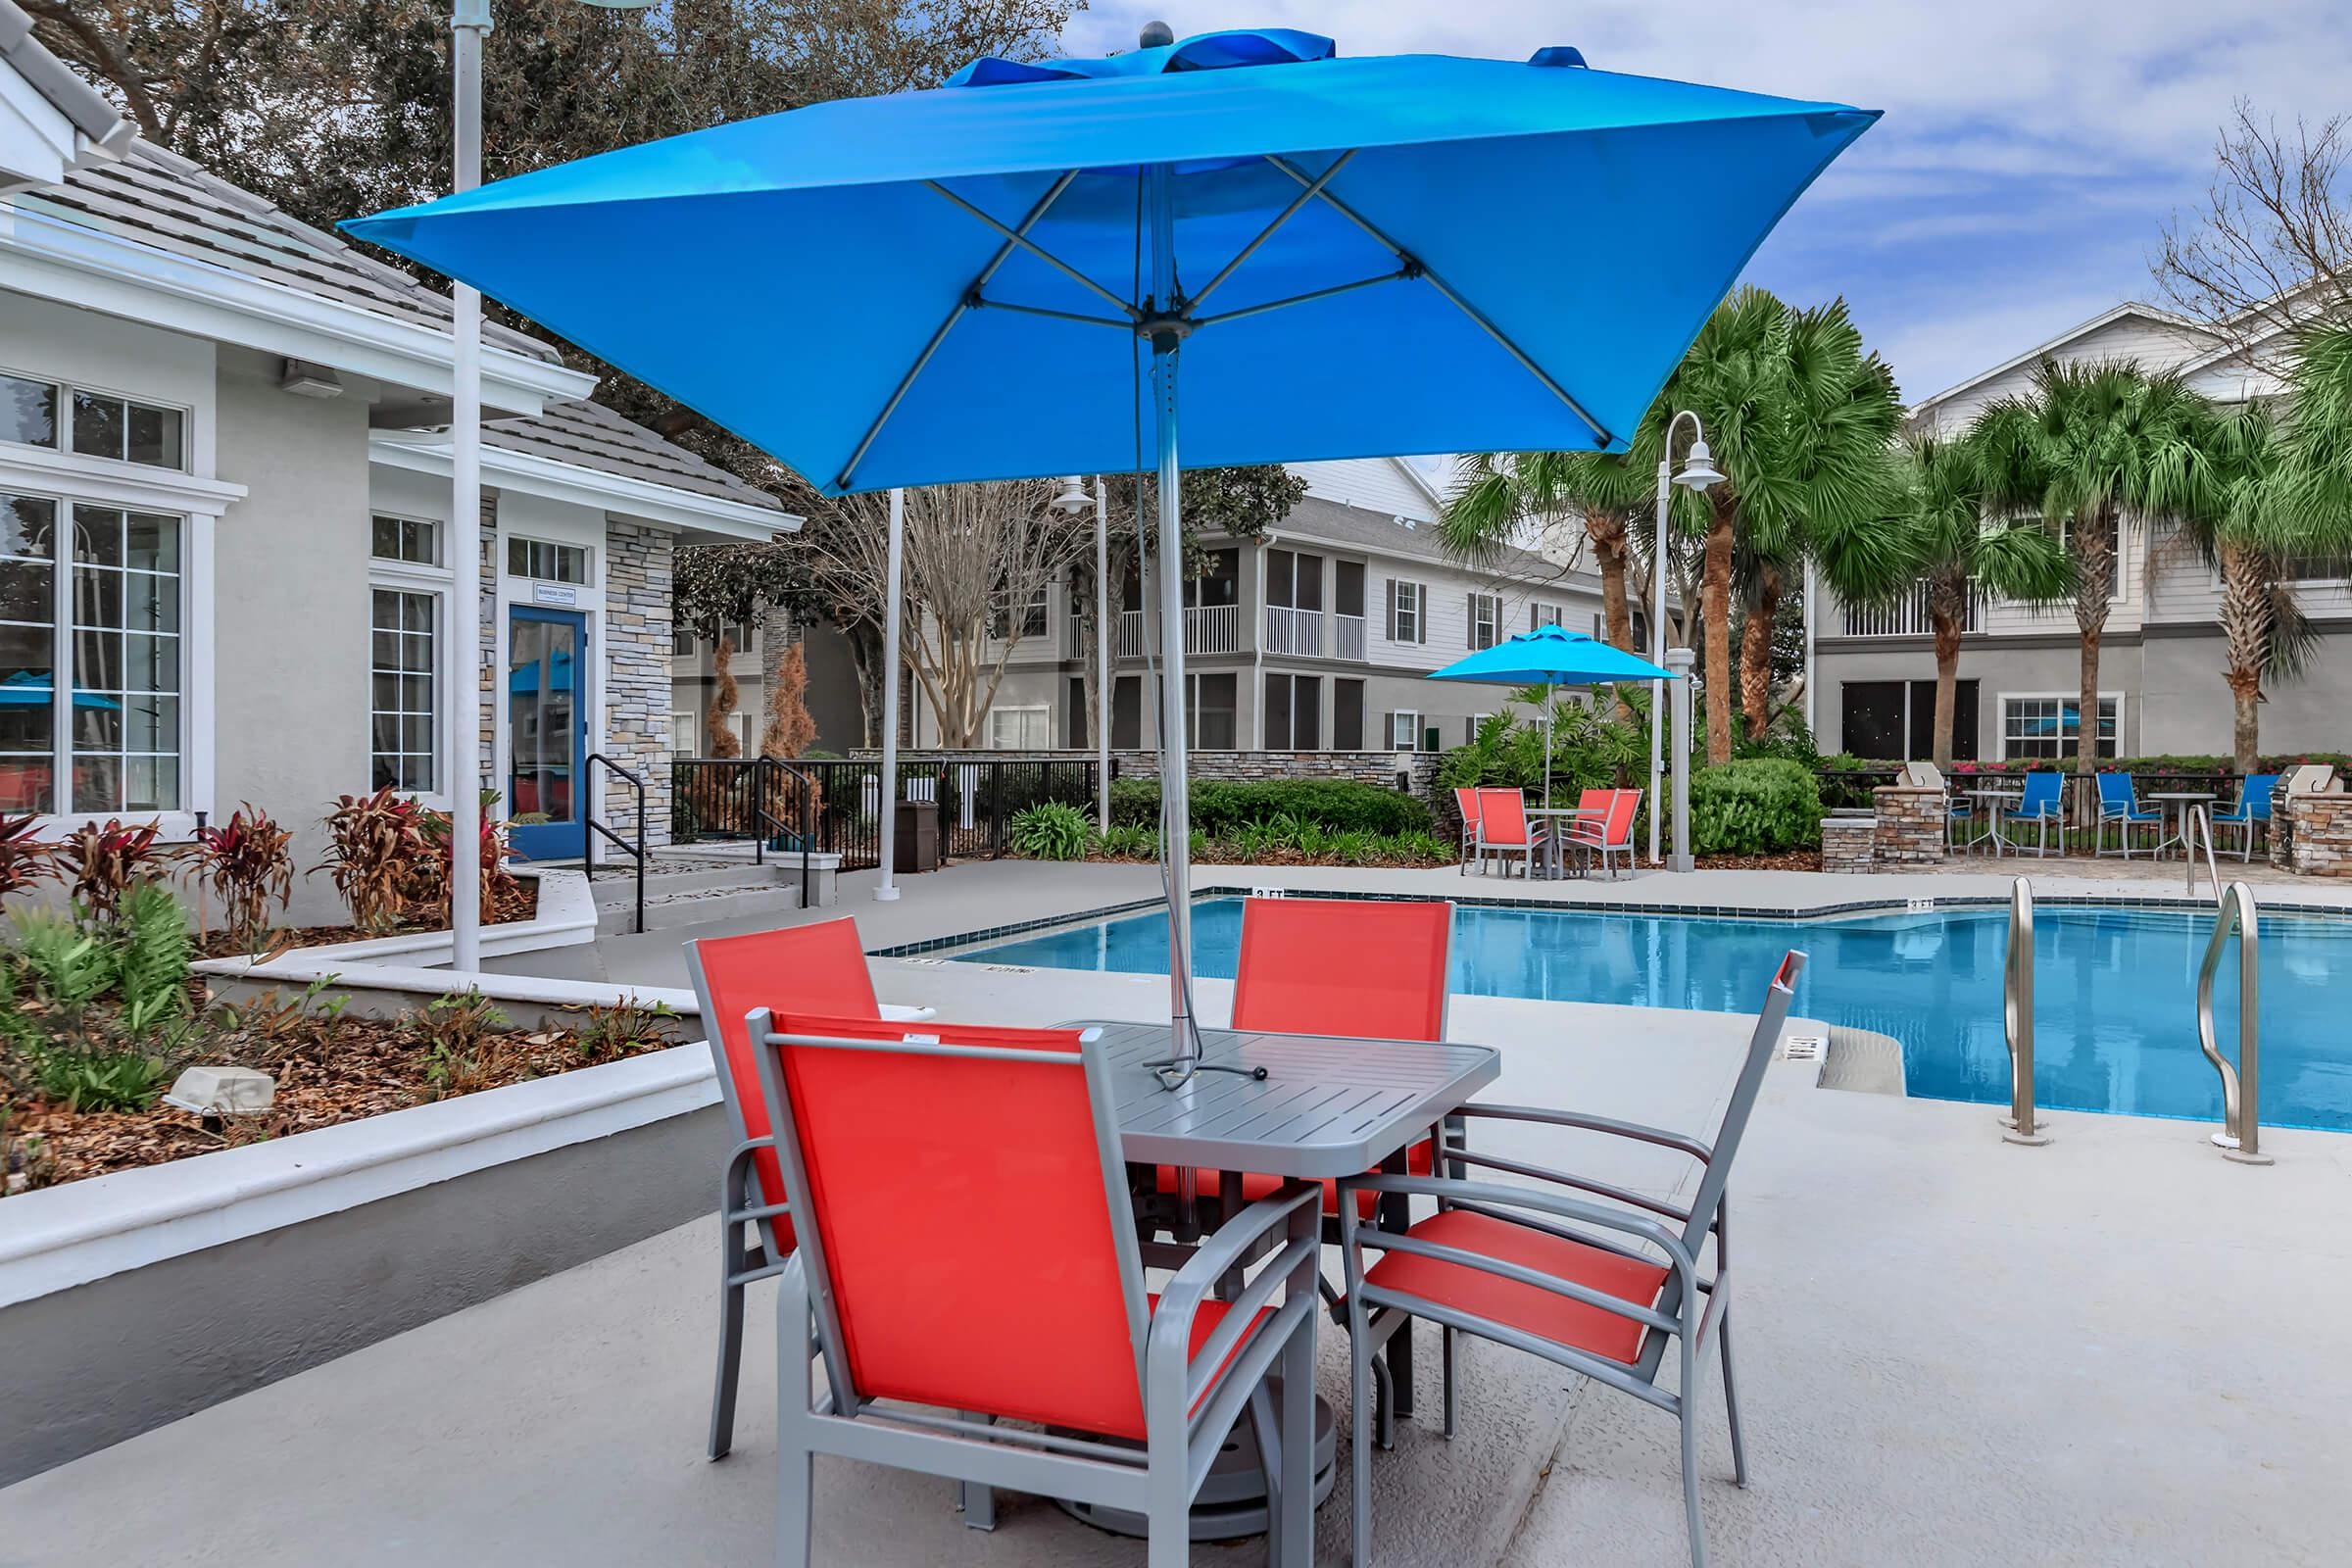 a blue umbrella sitting on a chair in front of a house